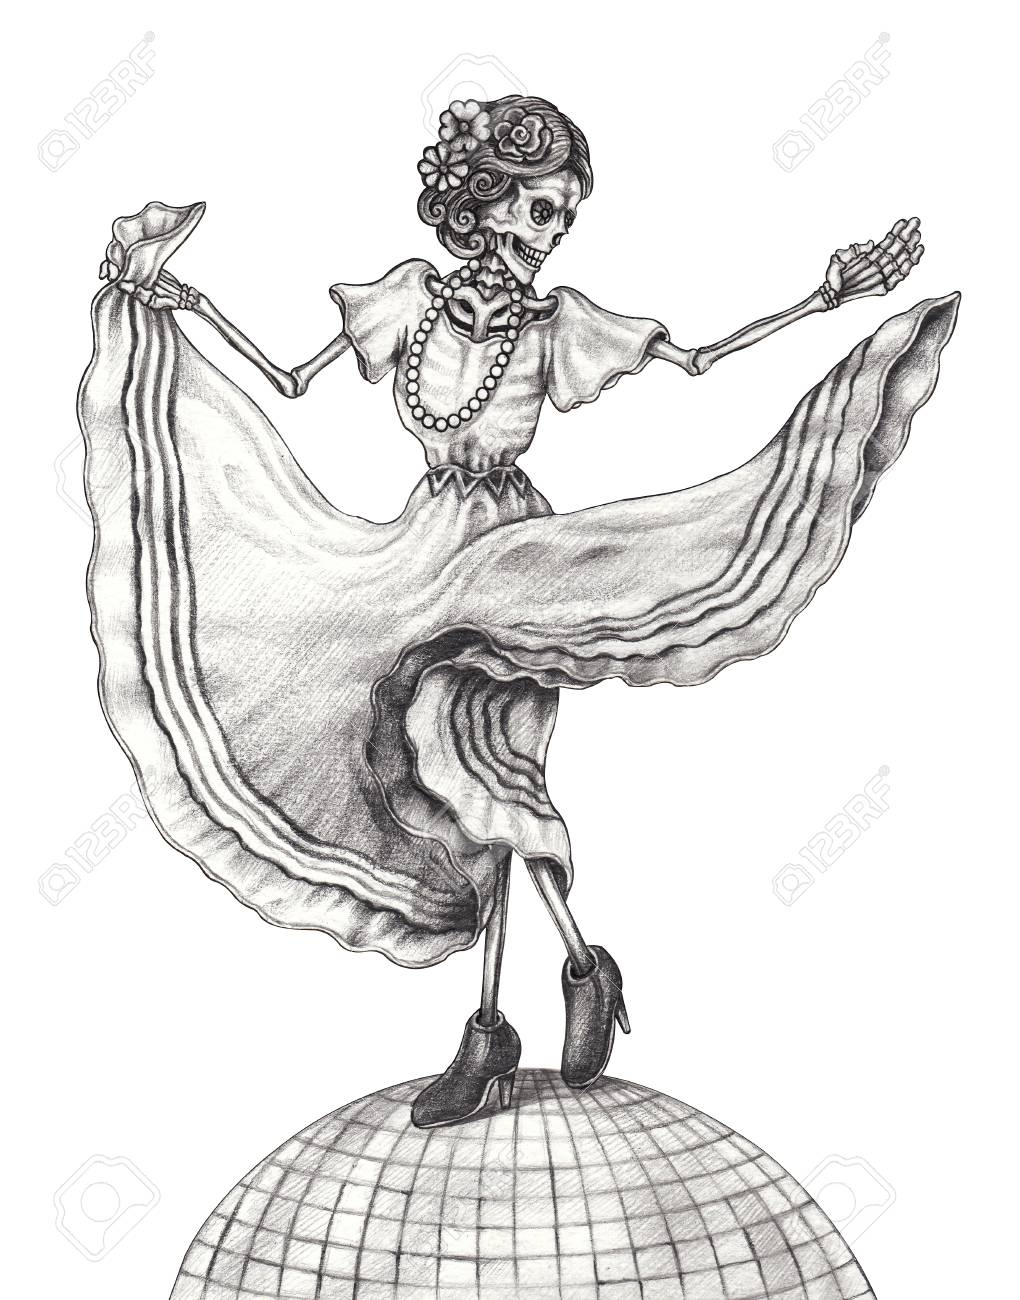 Art women skull dance day of the dead mexican hand pencil drawing on paper